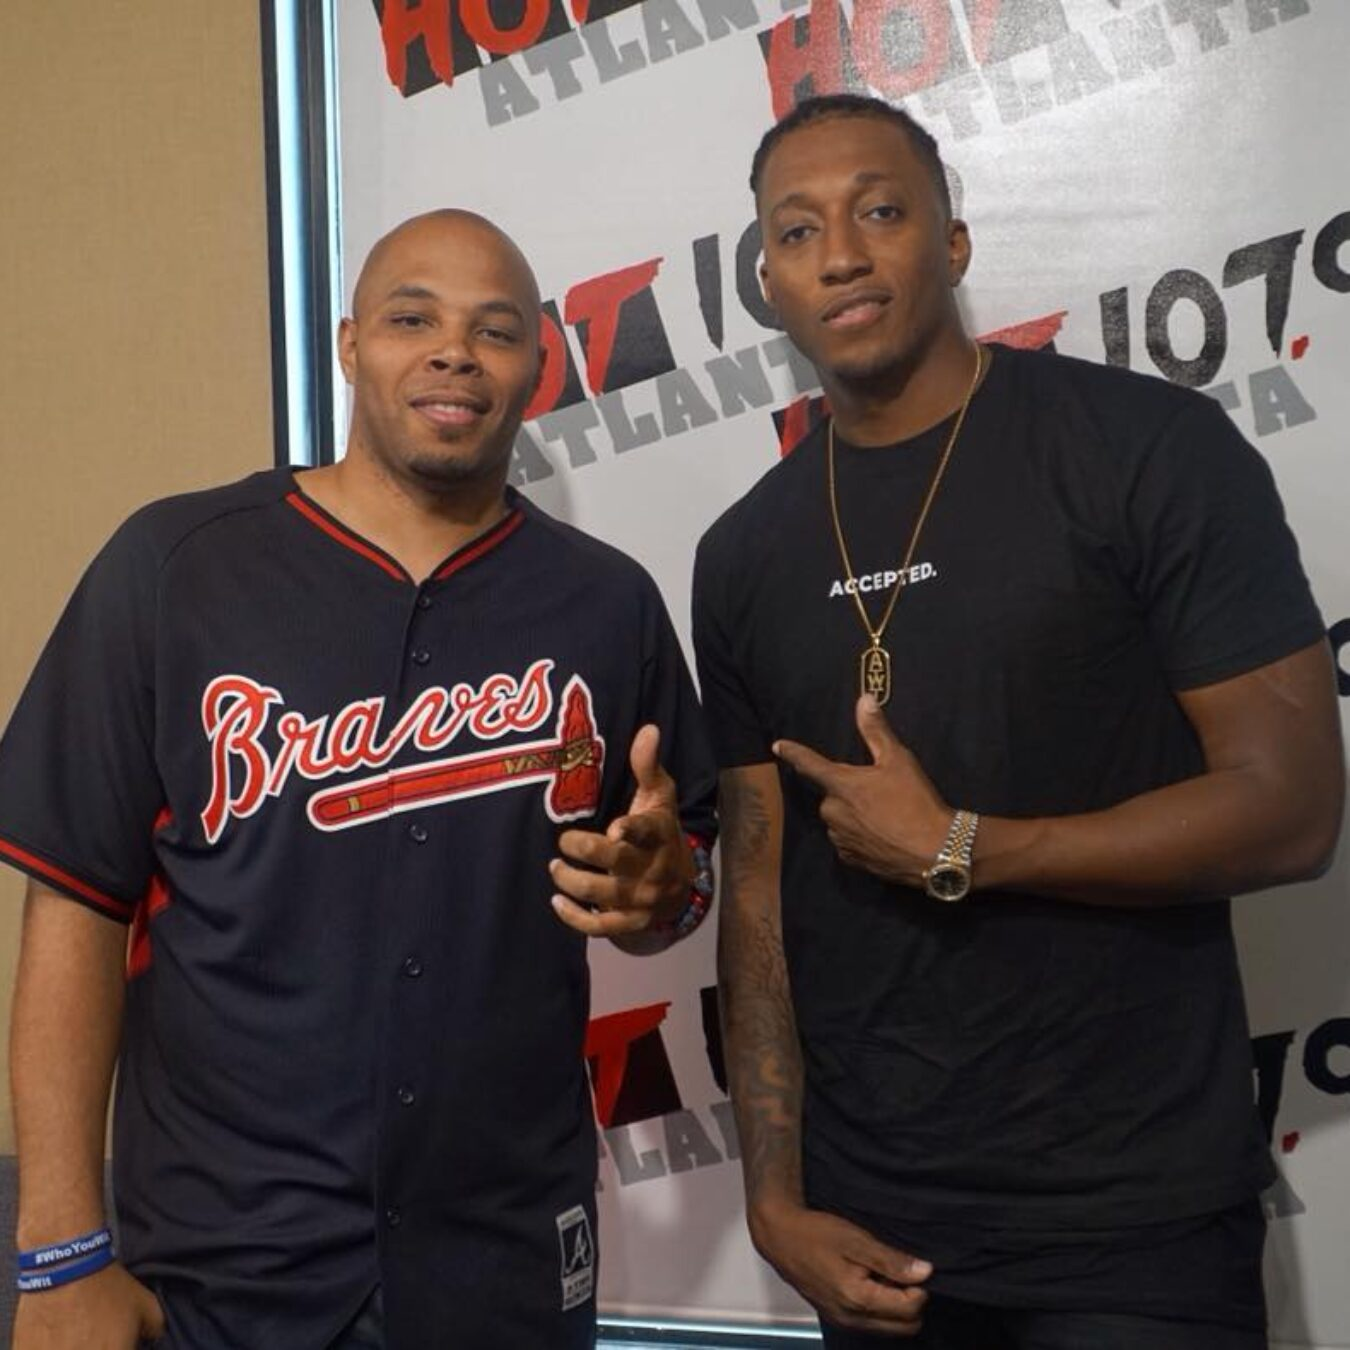 Lecrae and Reec pic